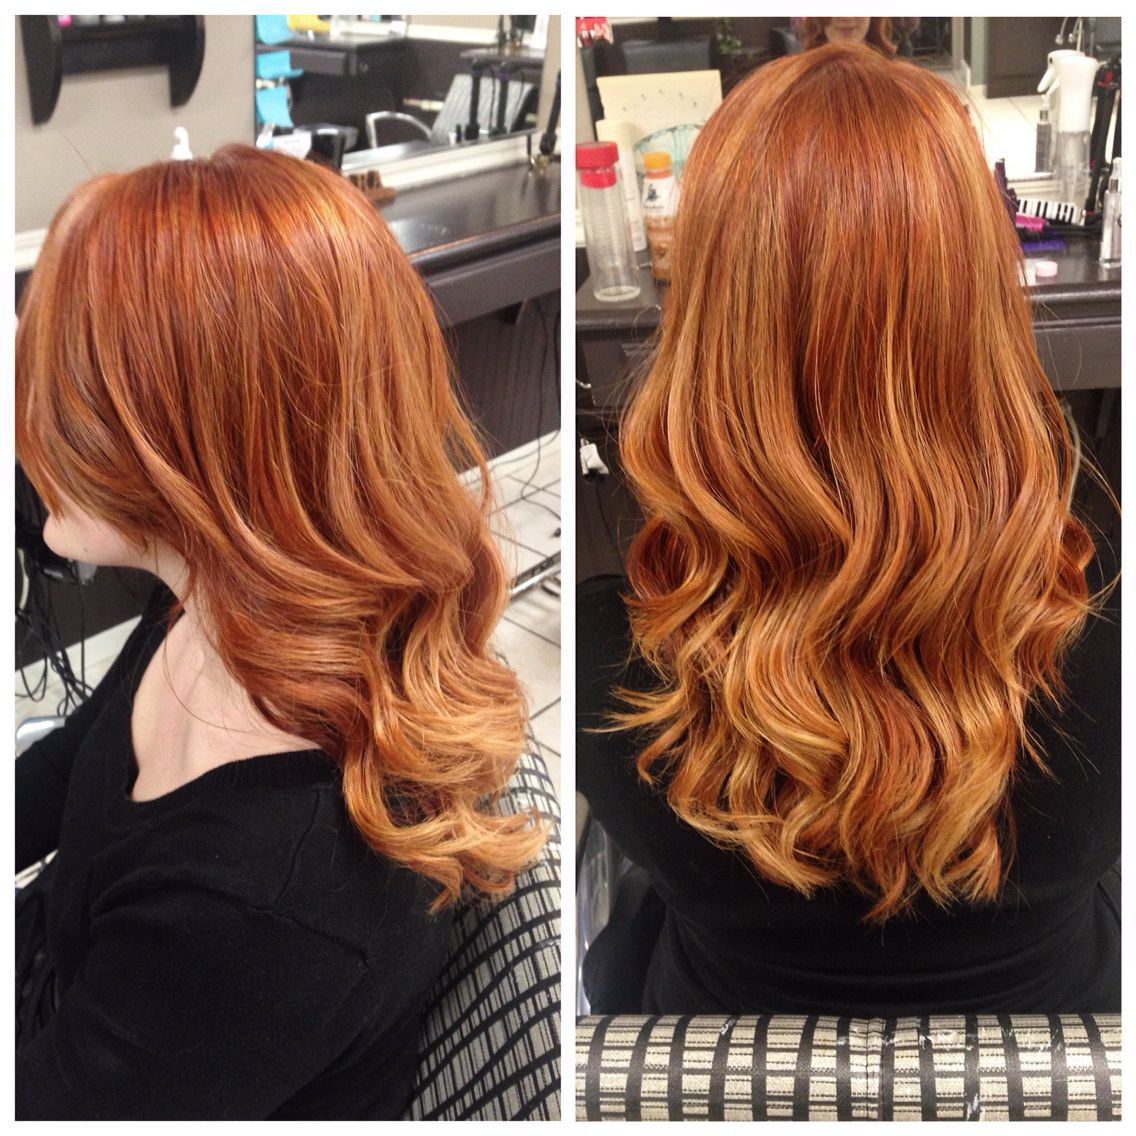 Stunning natural looking red hair with golden balayage highlights stunning natural looking red hair with golden balayage highlights pmusecretfo Choice Image